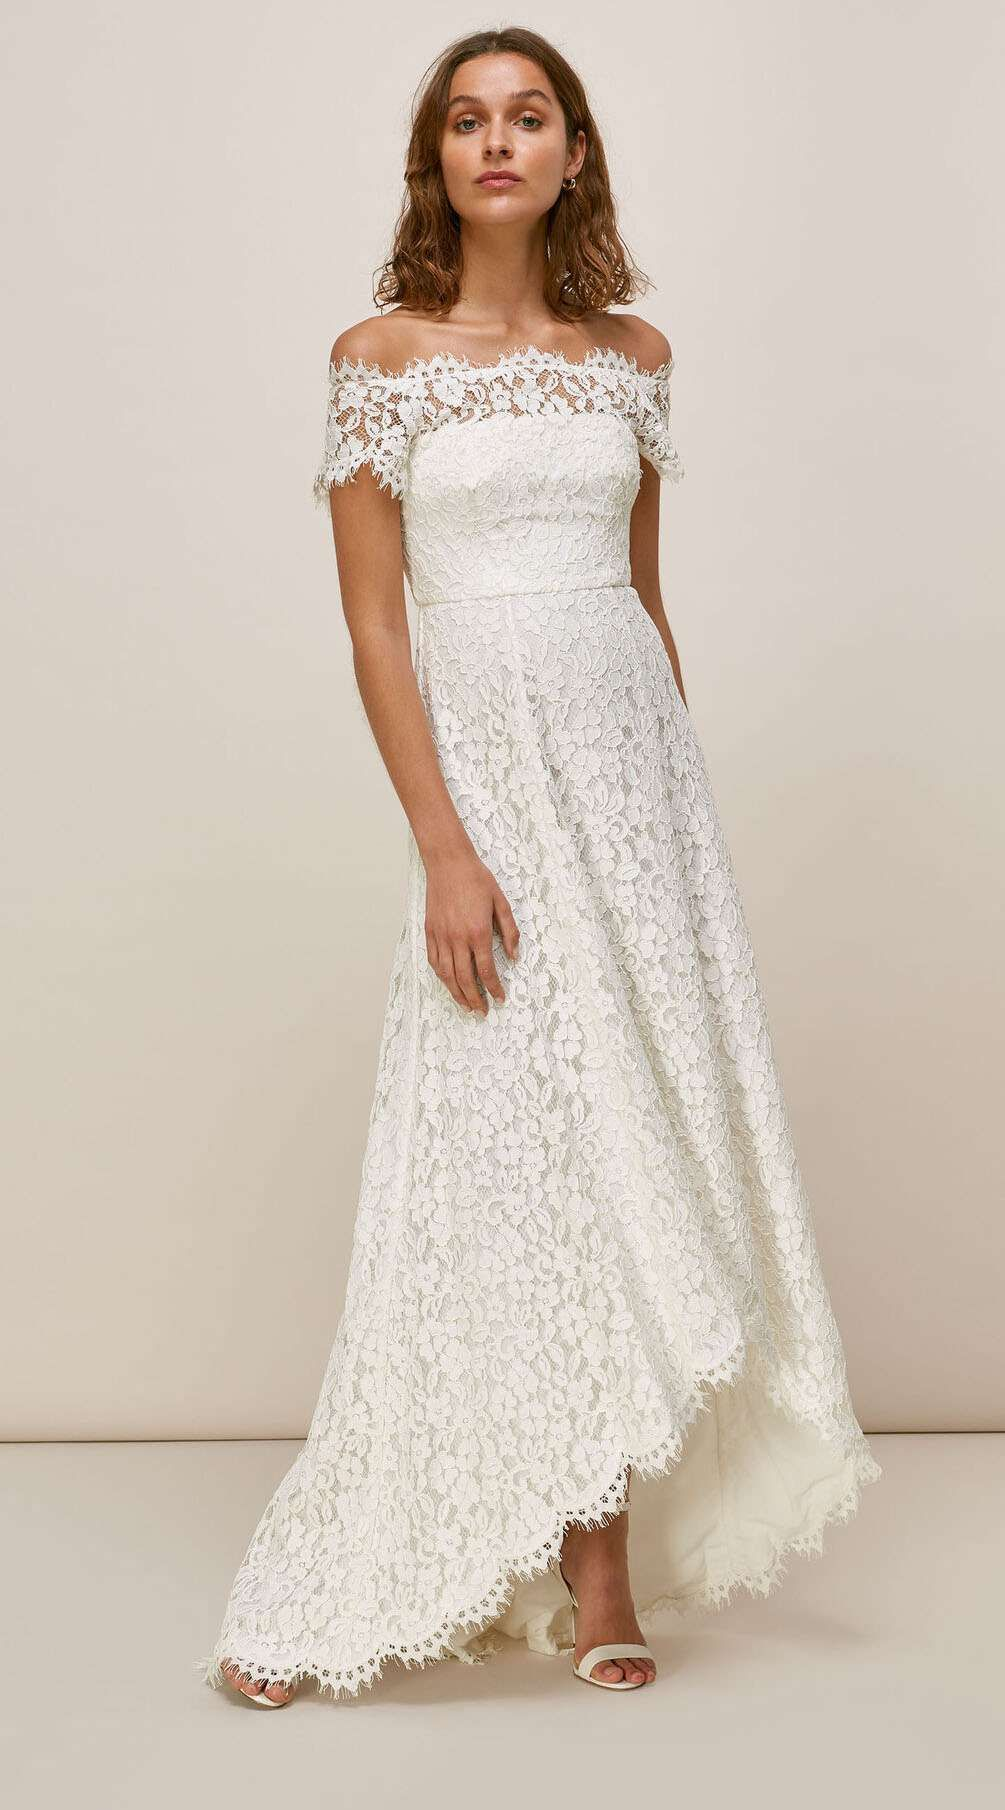 16 Chic And Casual Dresses For A Backyard Wedding Simple Wedding Dress Casual Casual Wedding Dress Backyard Wedding Dresses [ 1810 x 1005 Pixel ]